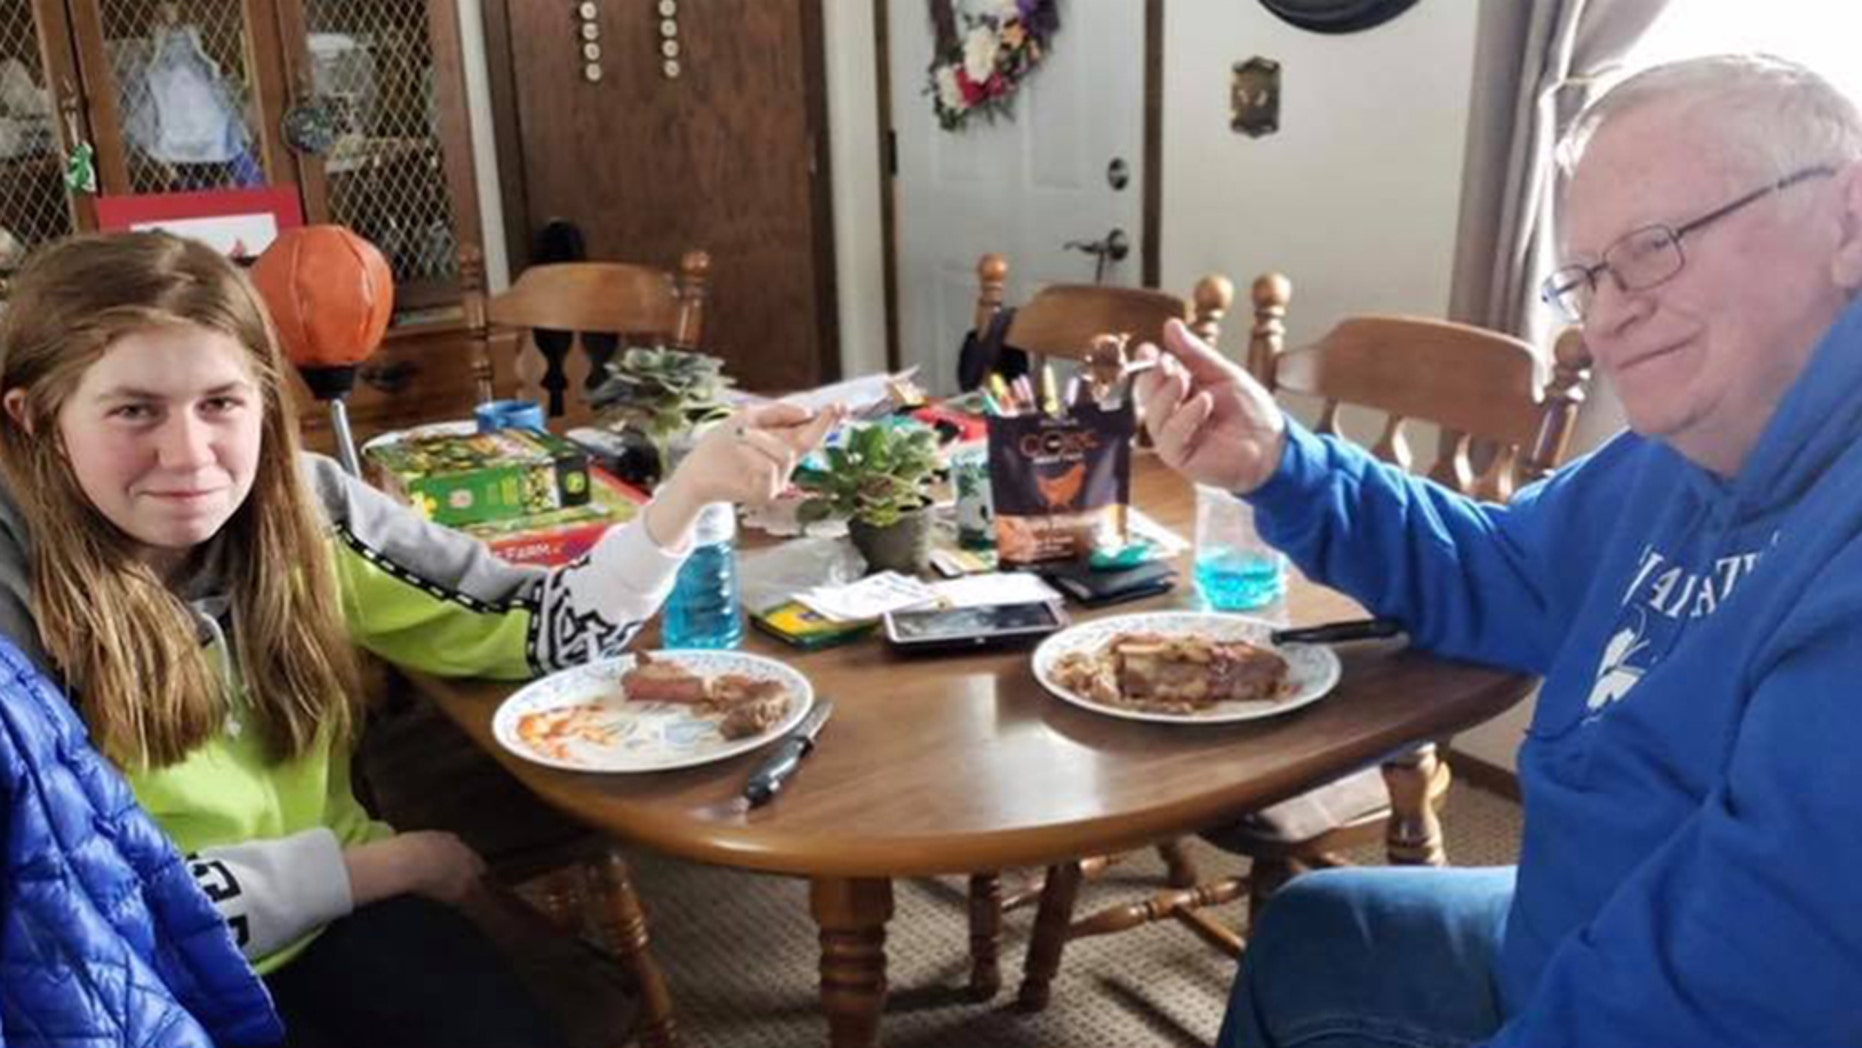 Jayme Closs enjoyed a steak dinner with her grandfather on Sunday.